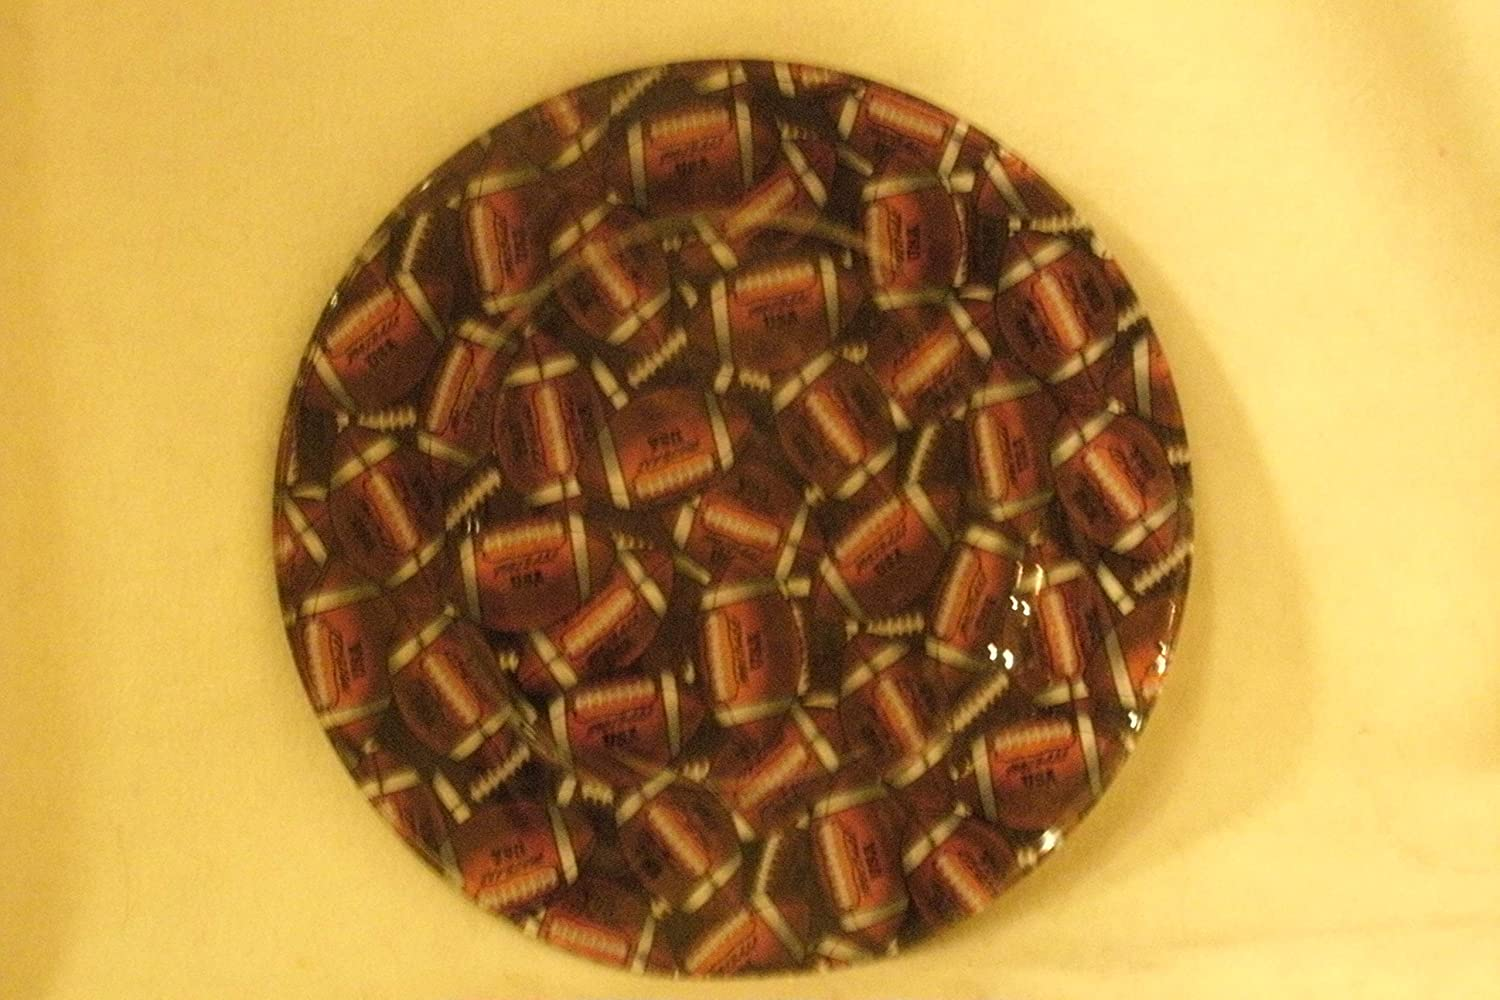 The Unique Gift Boutique Football Fabric-backed glass plate